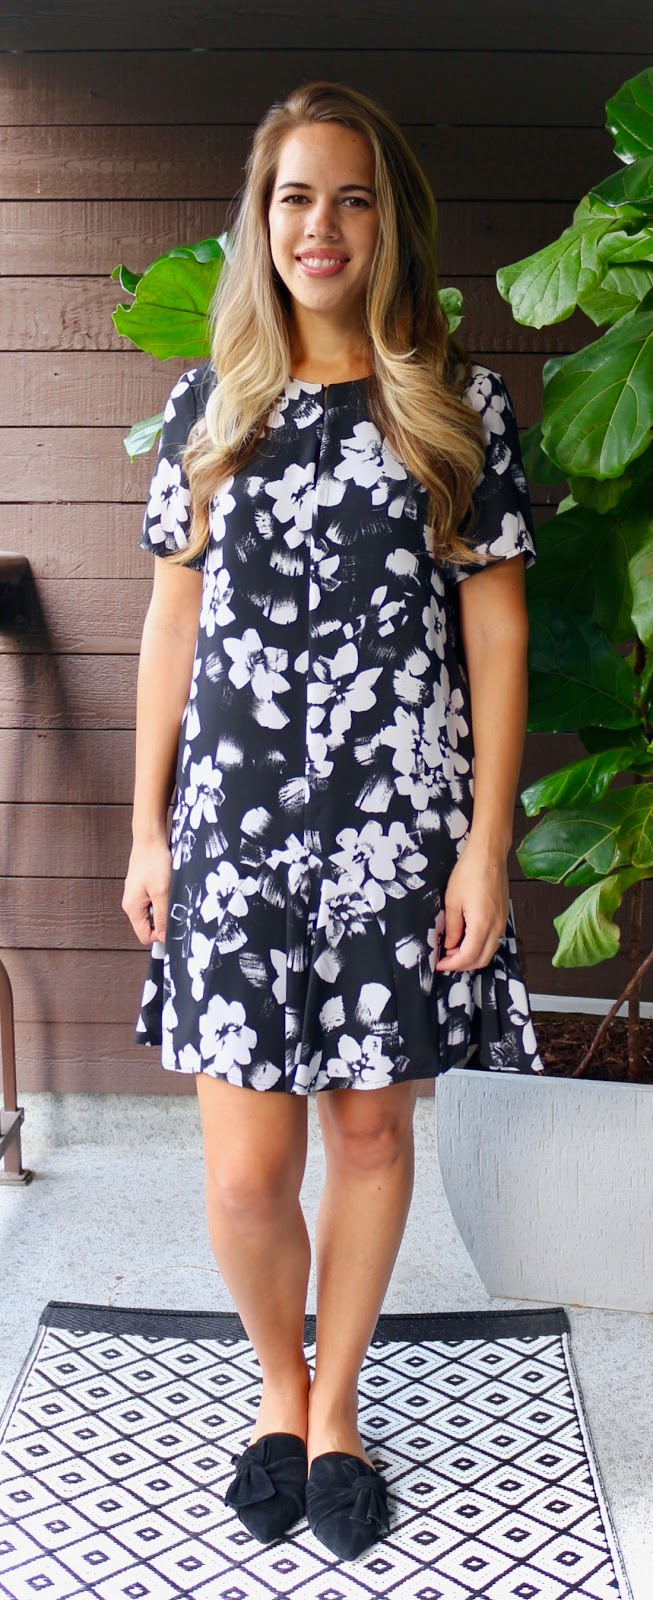 Jules in Flats - Ruffle Hem Shift Dress with Bow Mules (Business Casual Summer Workwear on a Budget)